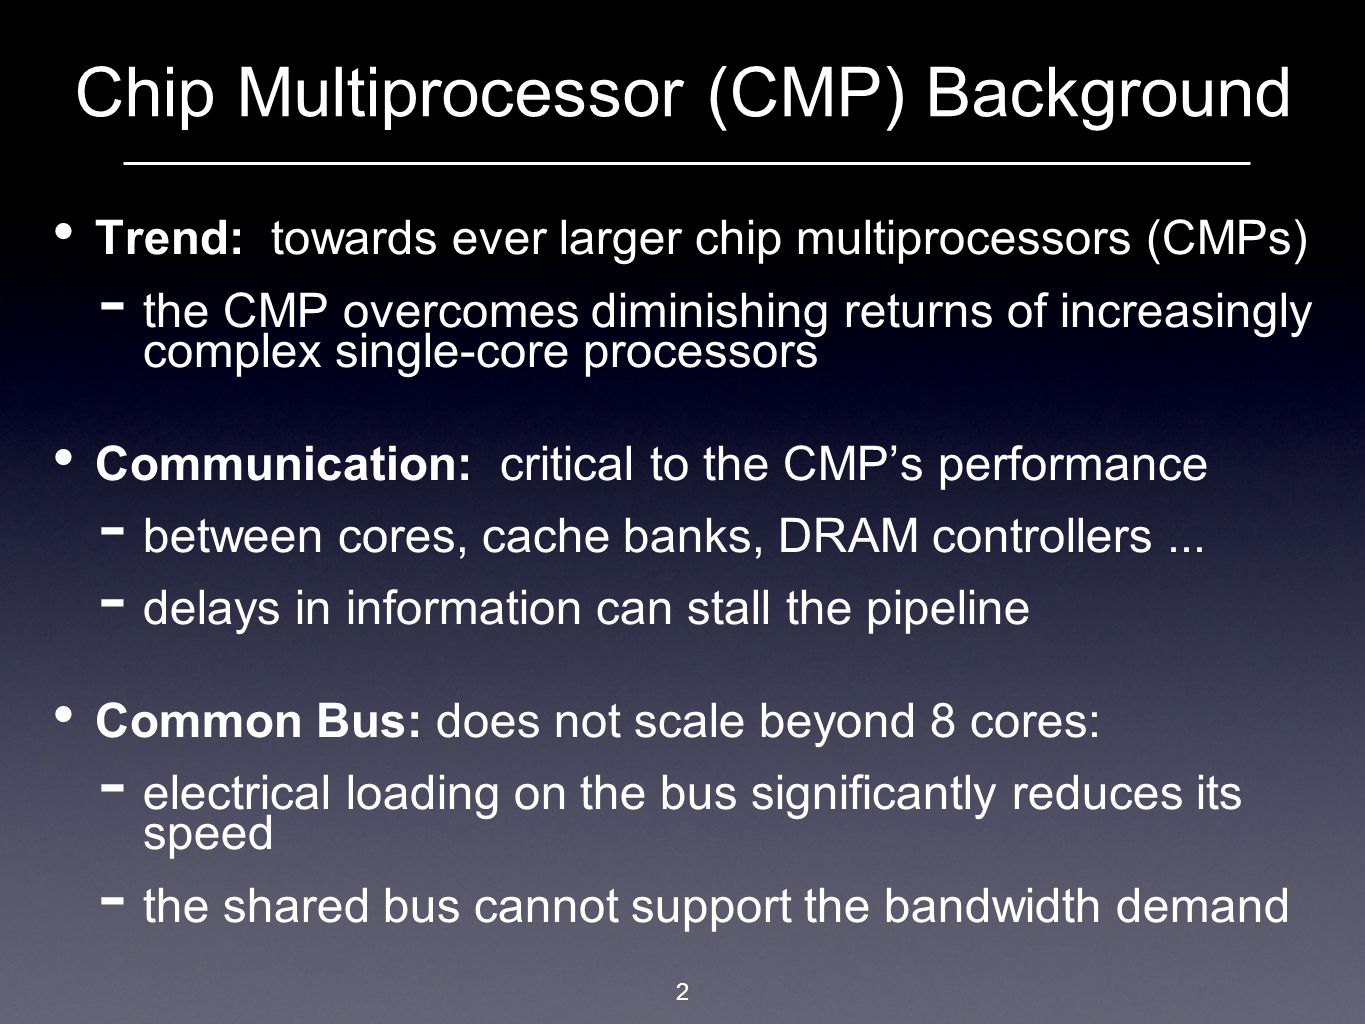 2 Chip Multiprocessor (CMP) Background Trend: towards ever larger chip multiprocessors (CMPs) the CMP overcomes diminishing returns of increasingly co